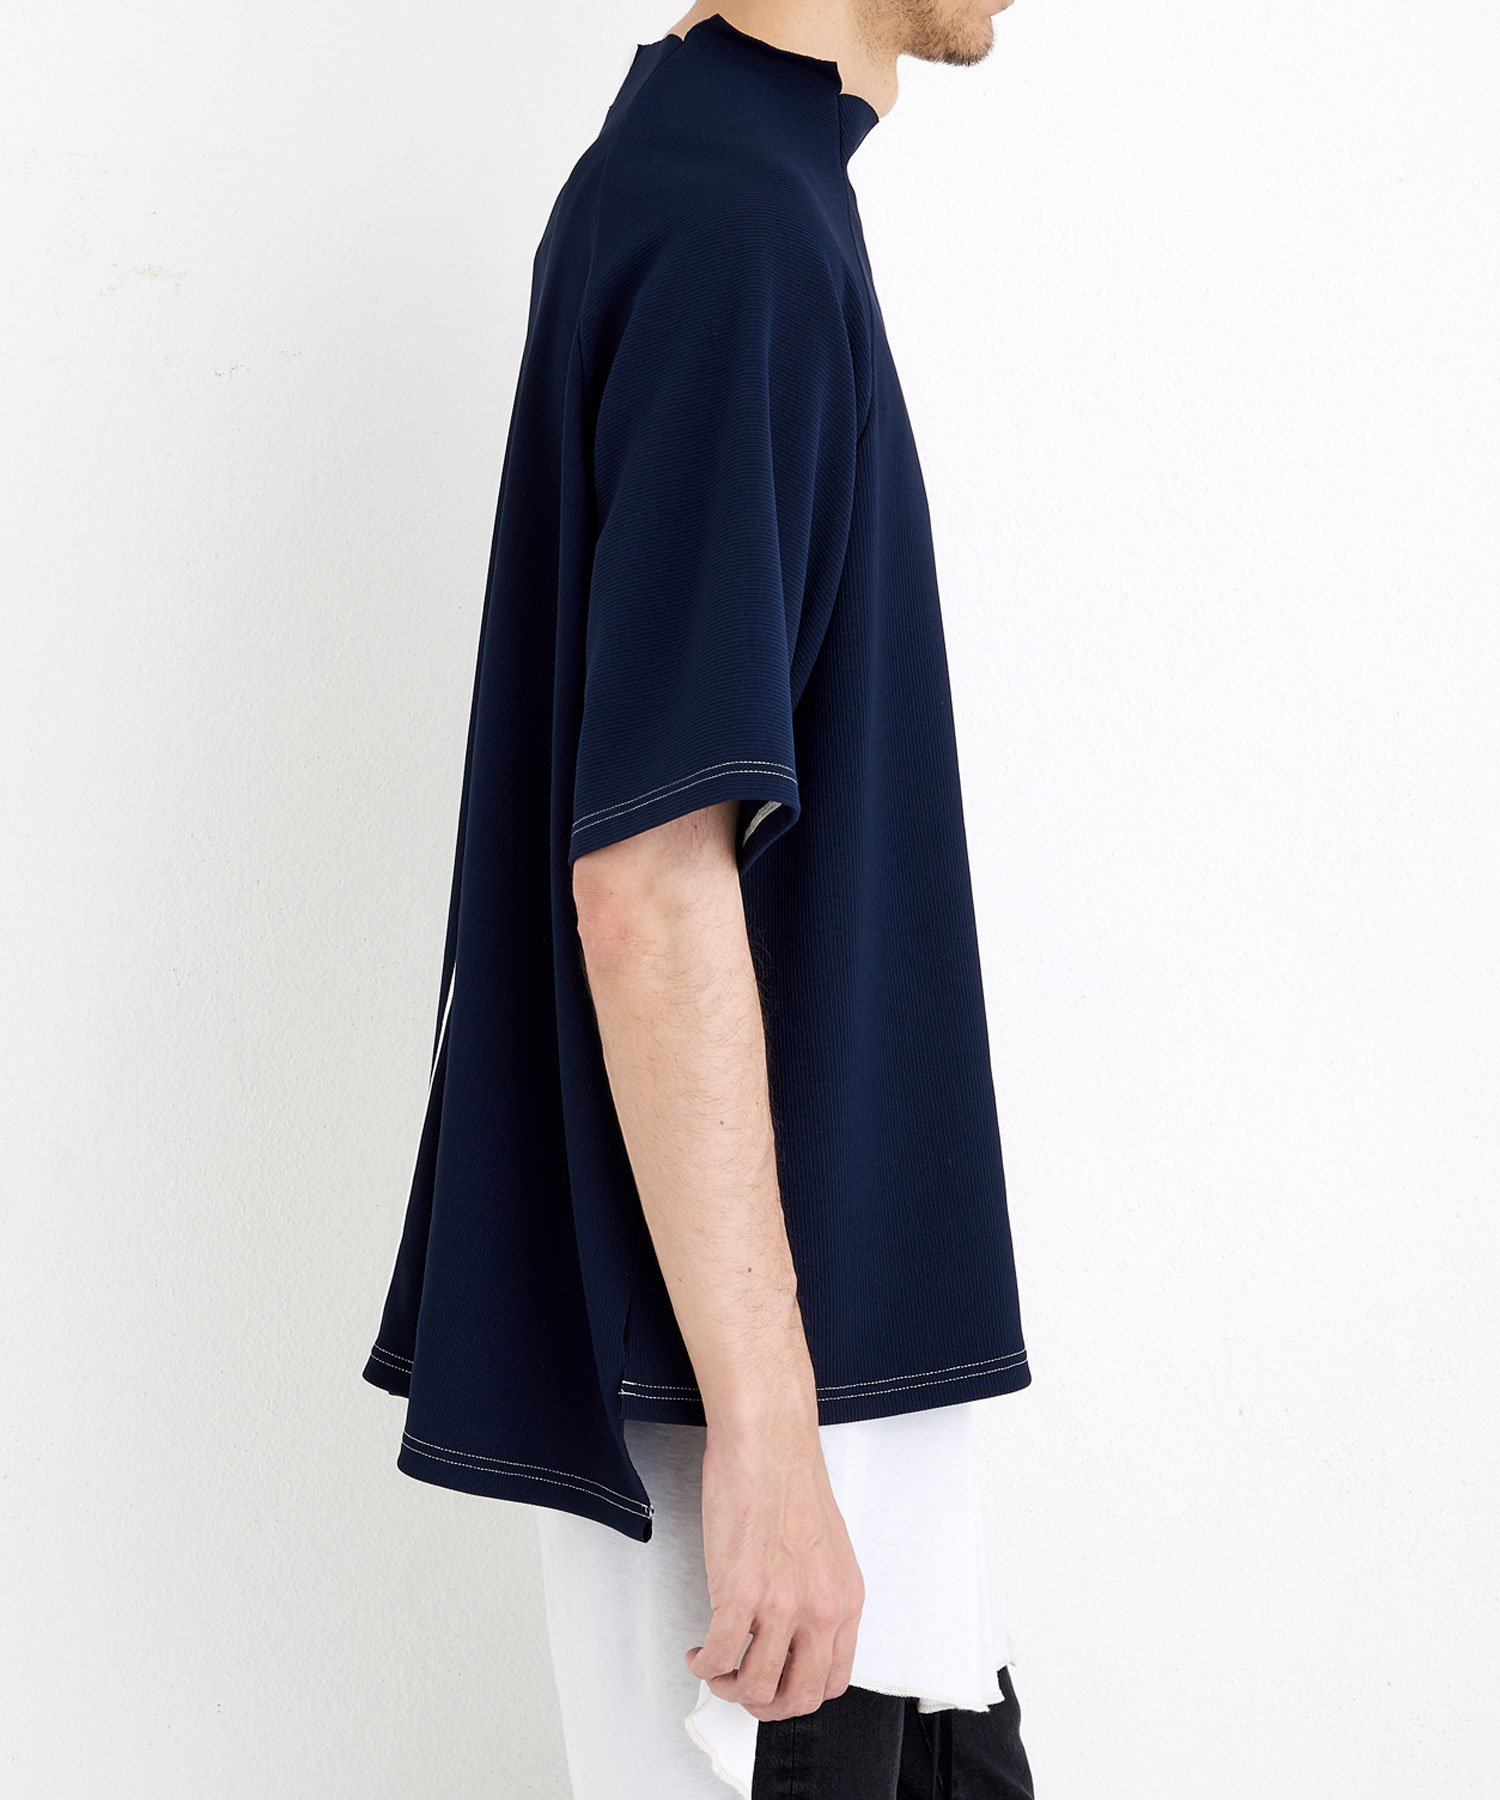 MOCK NECK TEE【Navy】&【Off】